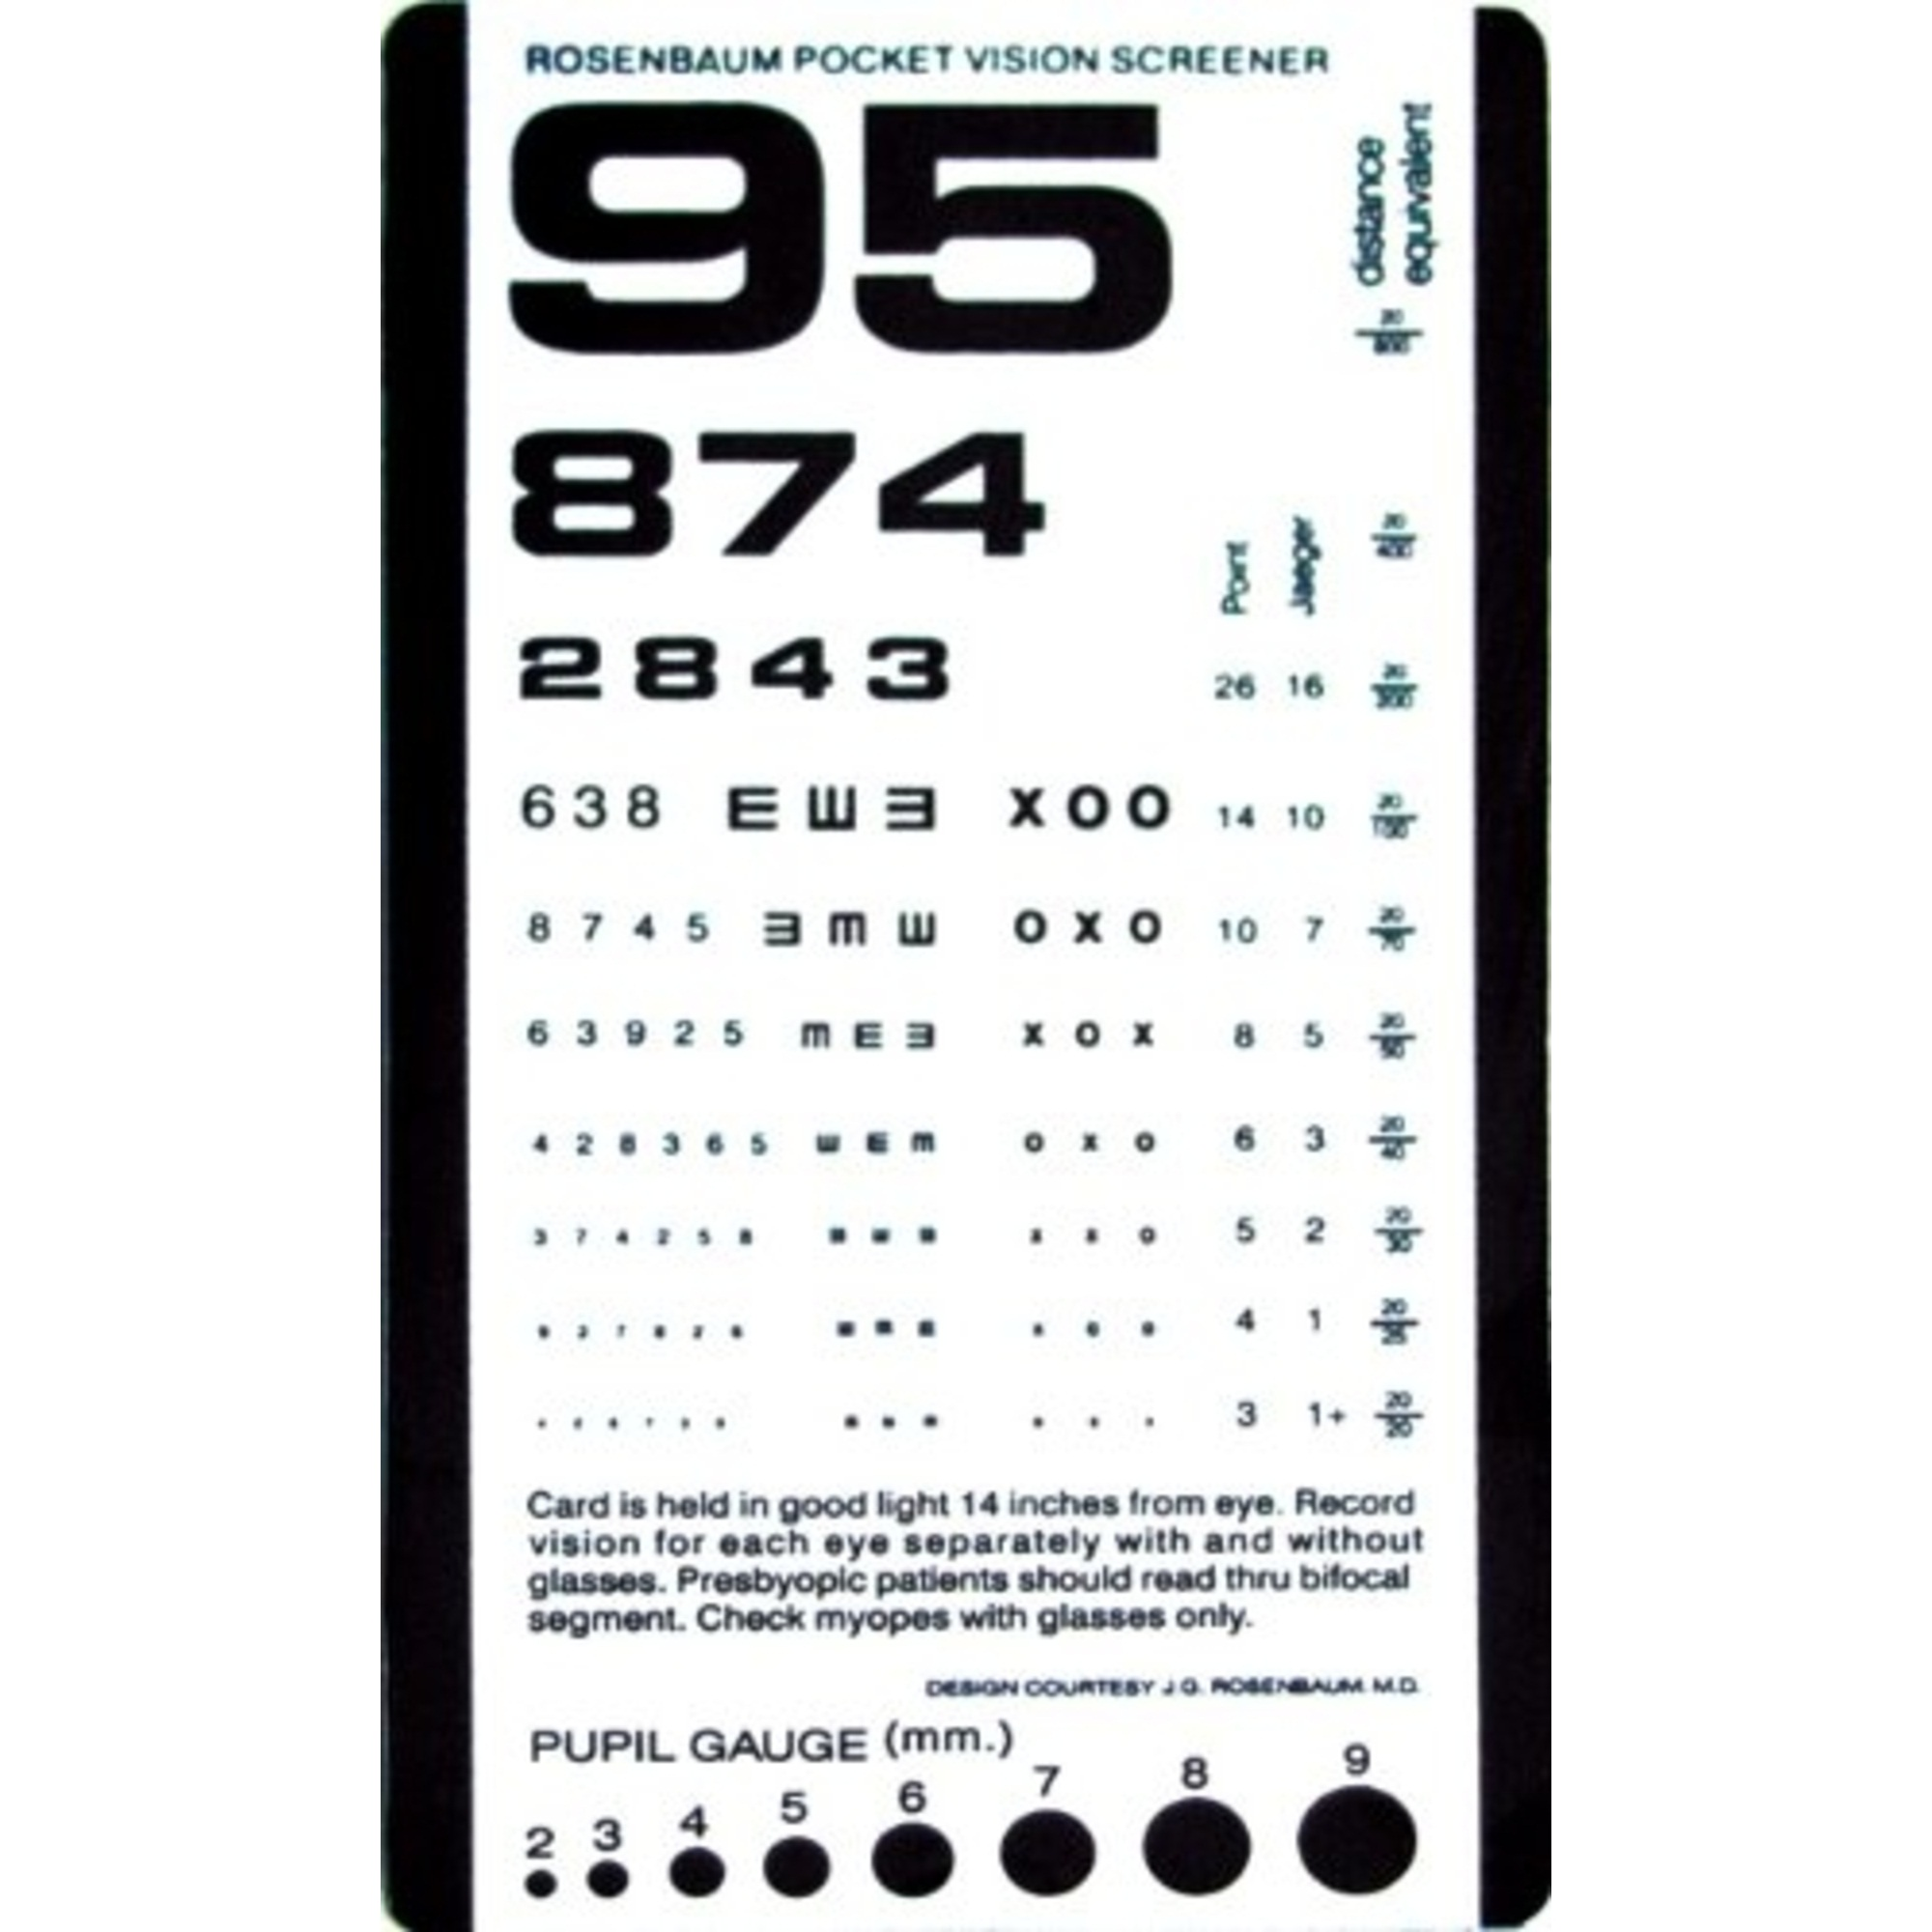 Pocket size plastic eye chart vision screener 628586197602 ebay pocket size plastic eye chart vision screener geenschuldenfo Images